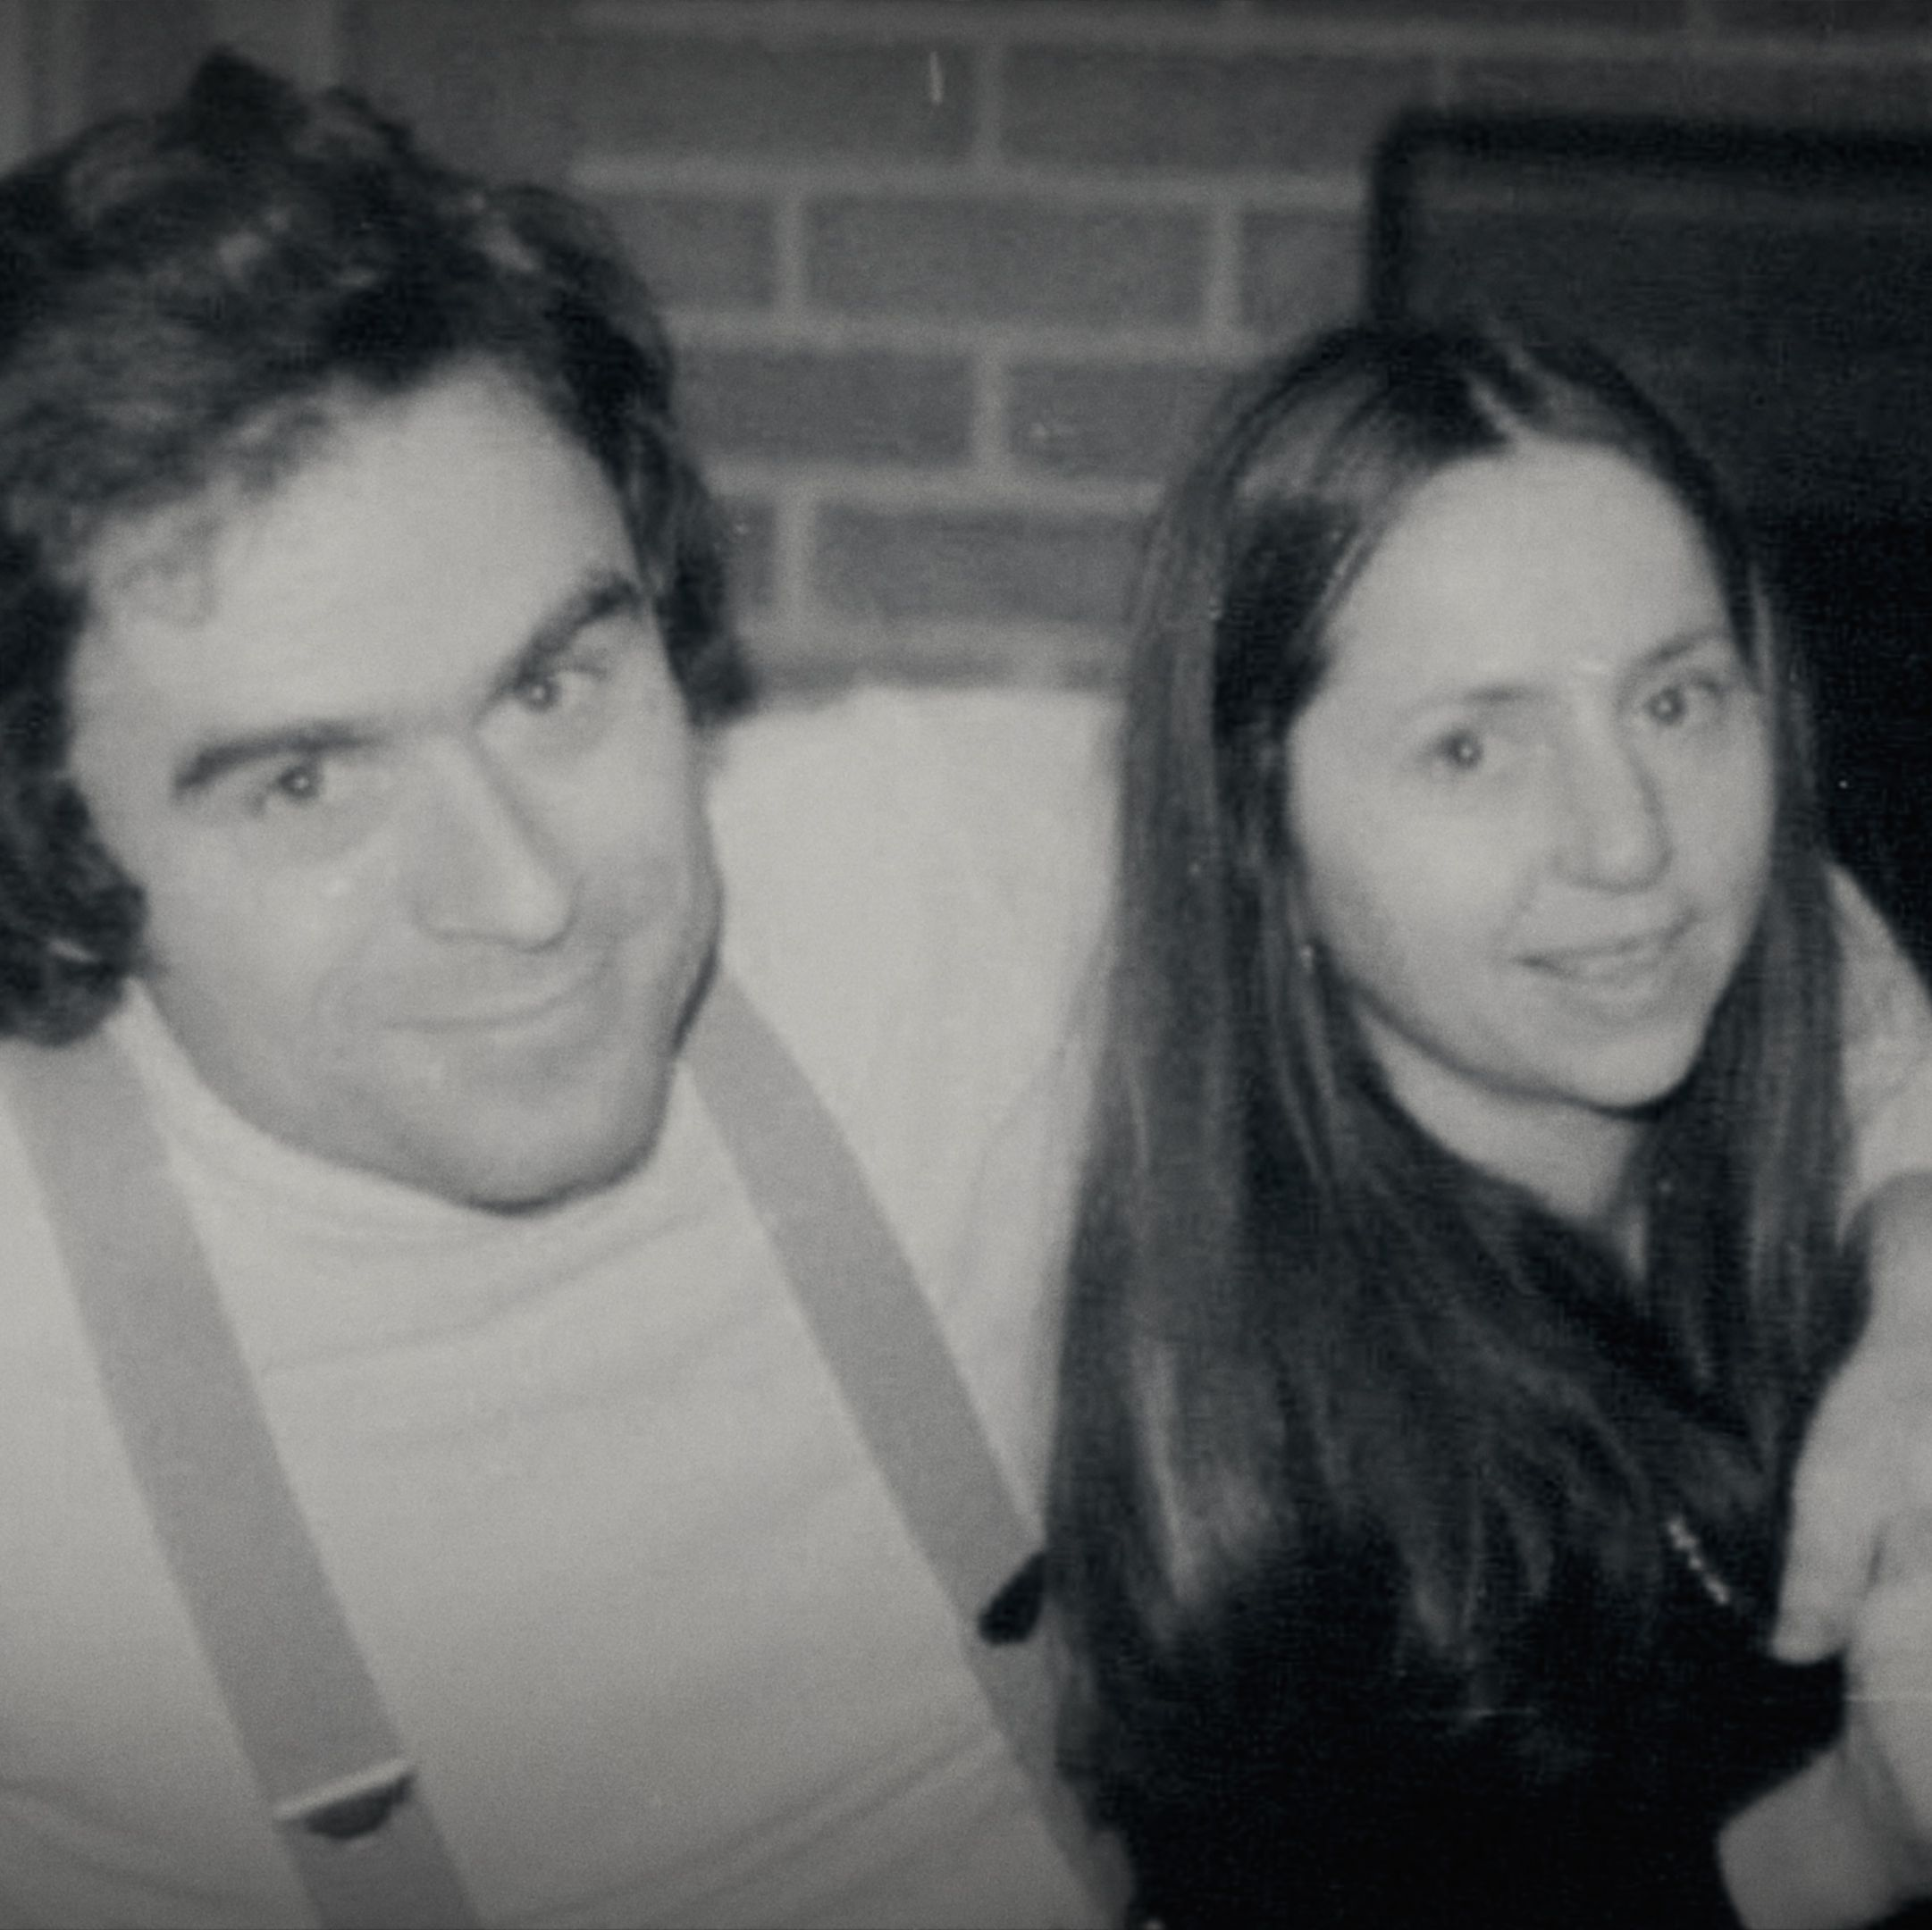 Bundy and his one-time girlfriend, Elizabeth Kendall.